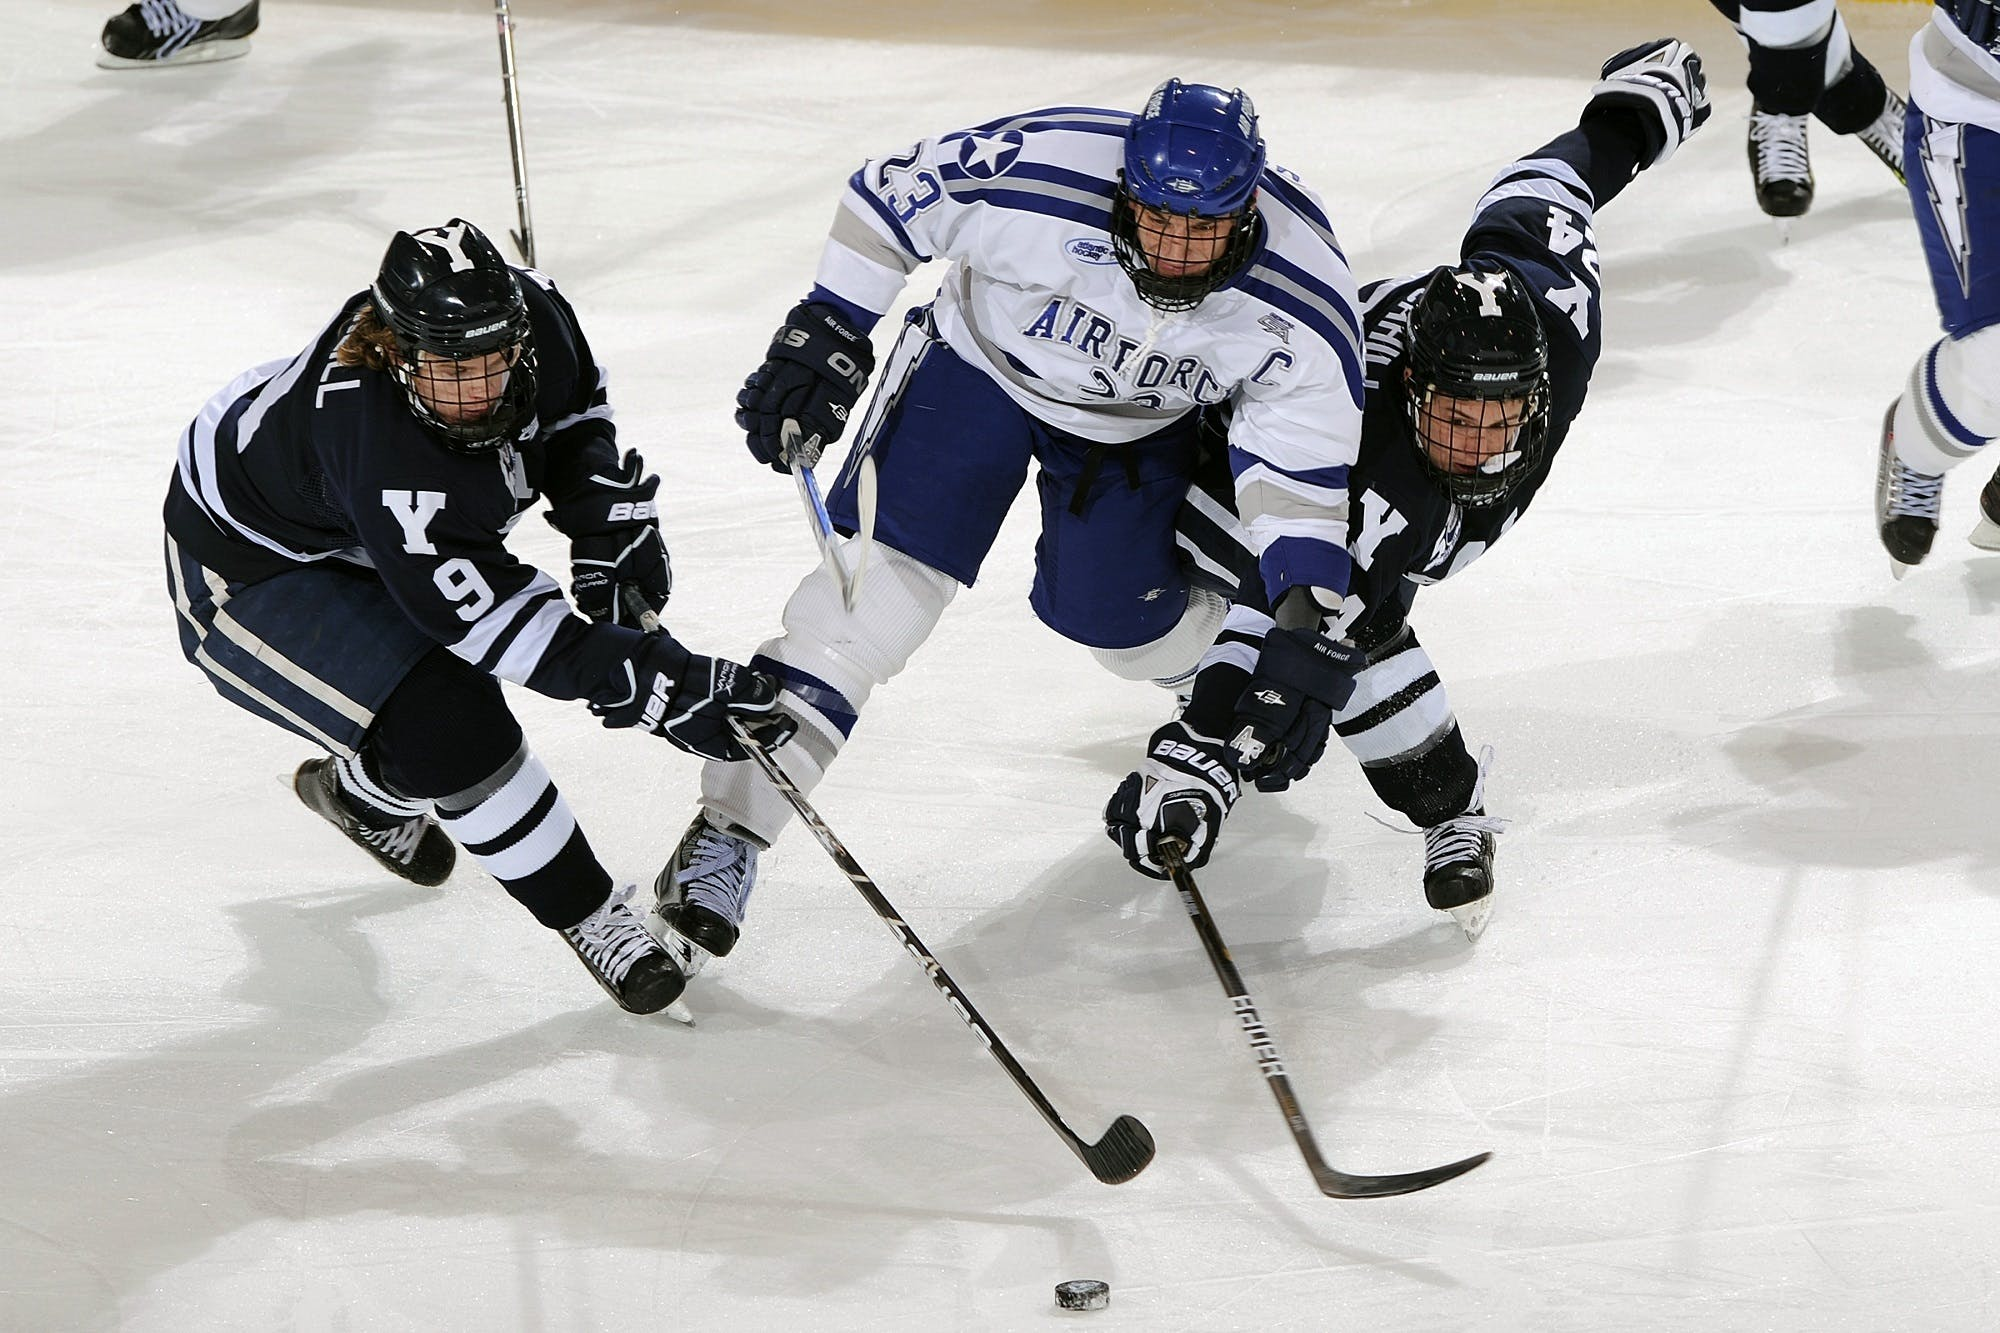 Men's in Blue and White Jersey Shirt Playing Hockey